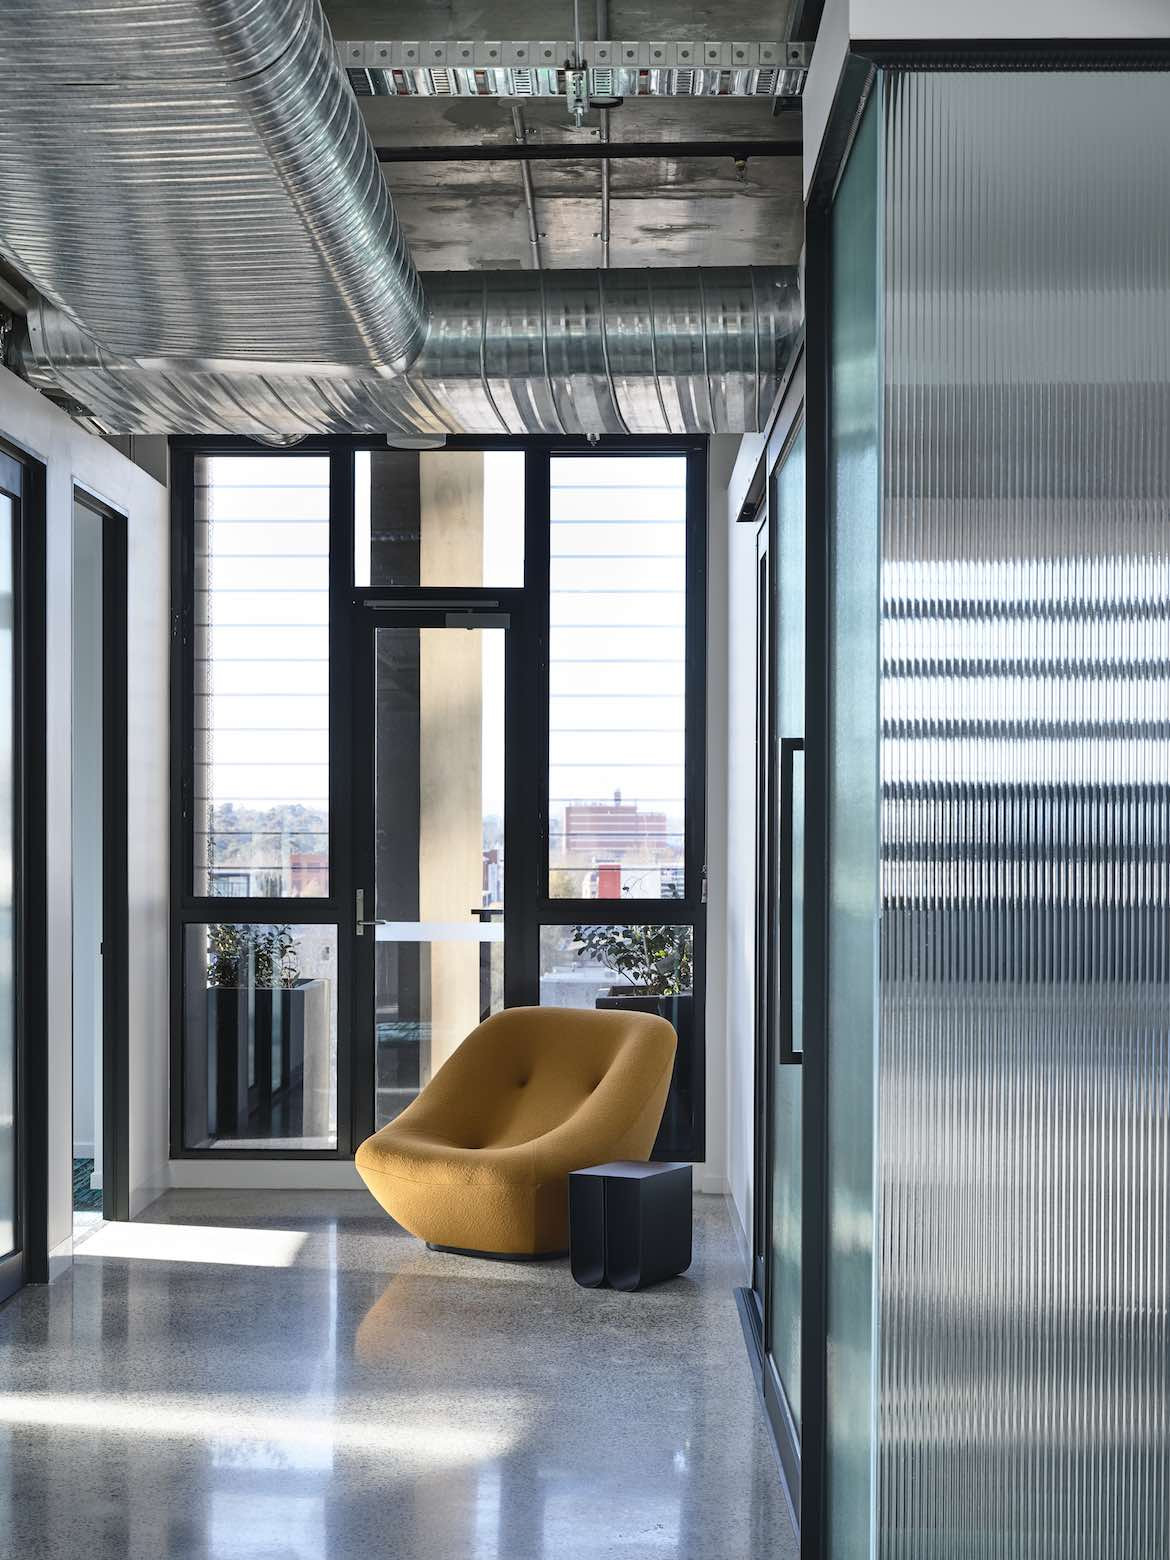 Interior yellow chair in the McCluskey Studio and SJB designed medical practice.